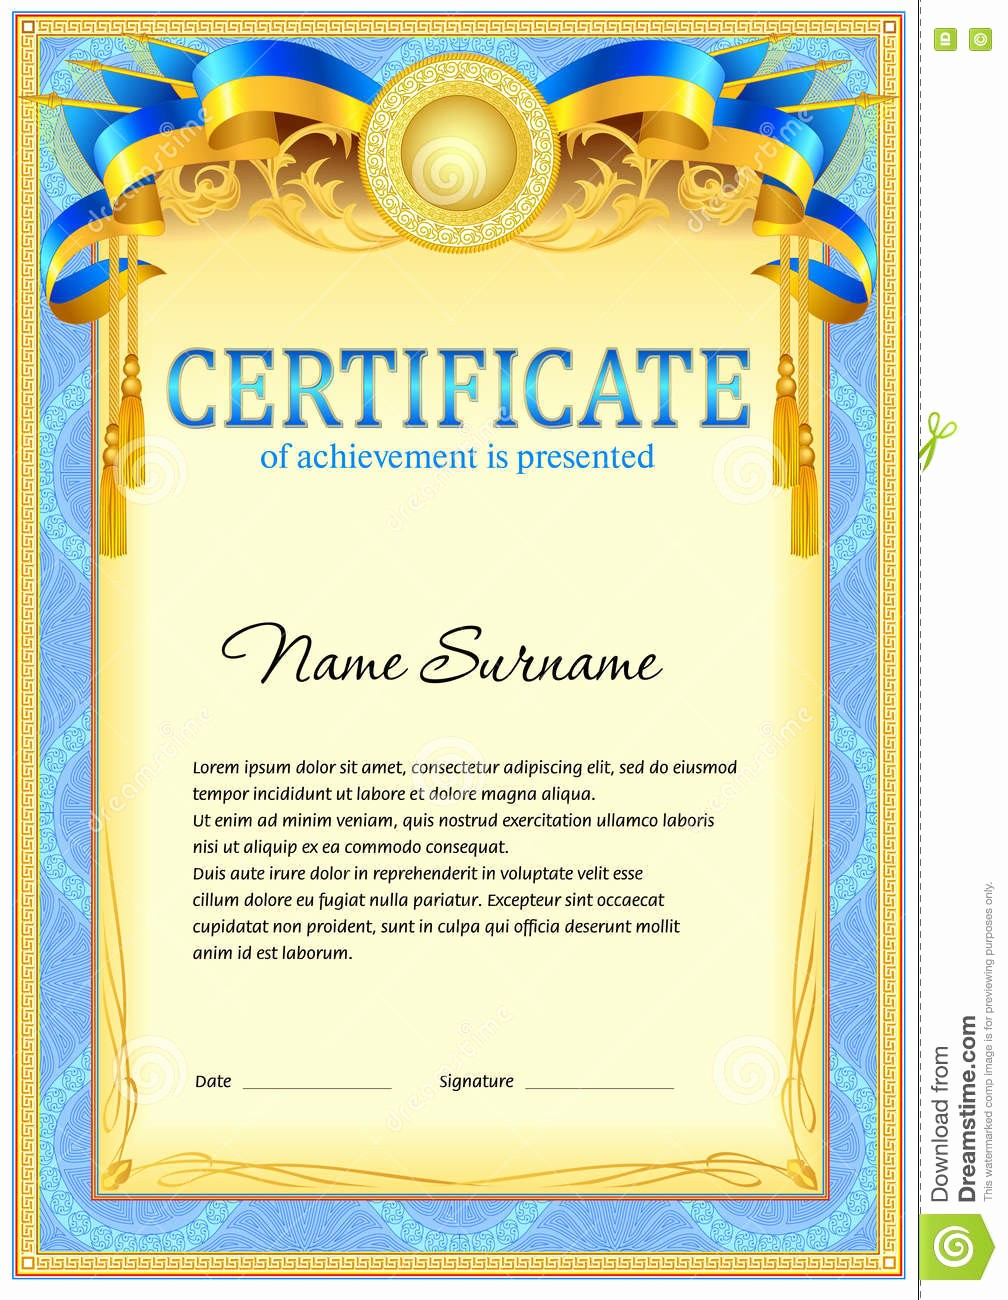 How to Design A Certificate Awesome Certificate Design Template Stock Vector Image